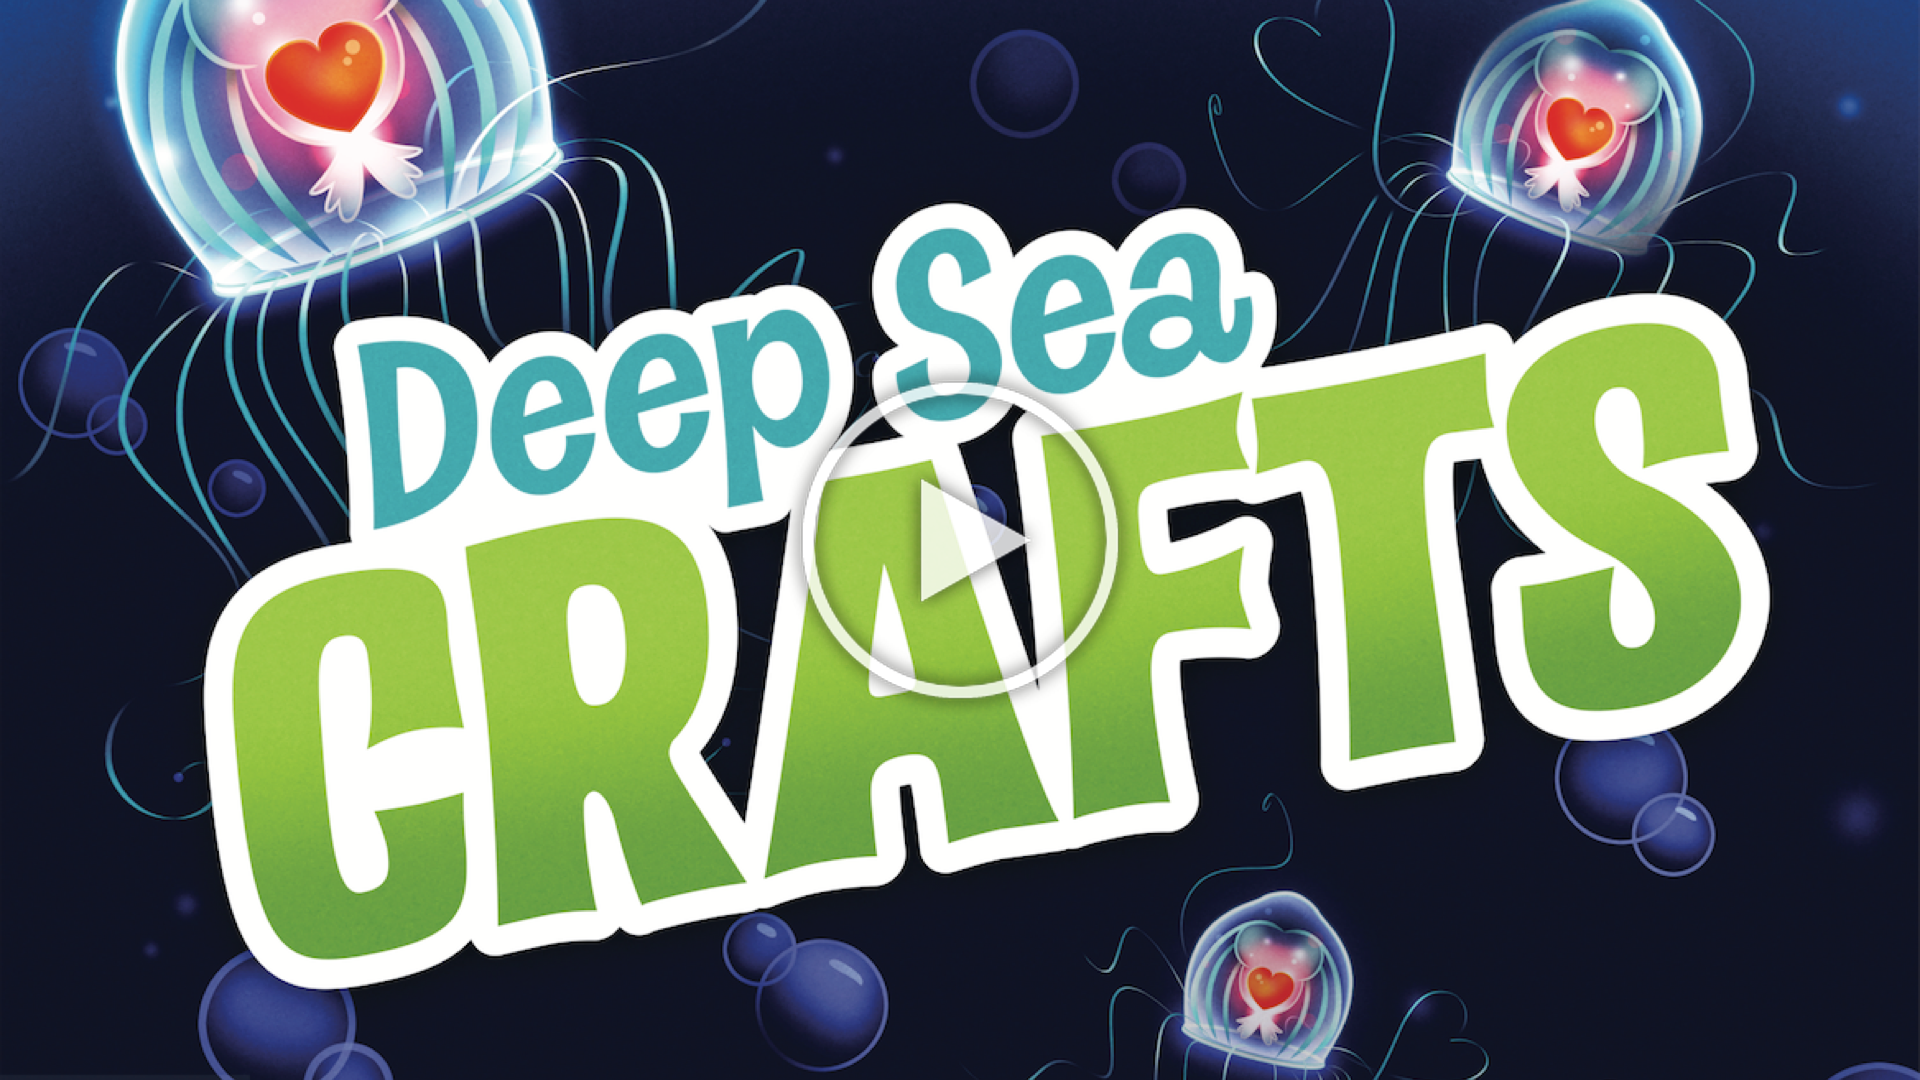 Deep Sea Crafts play video